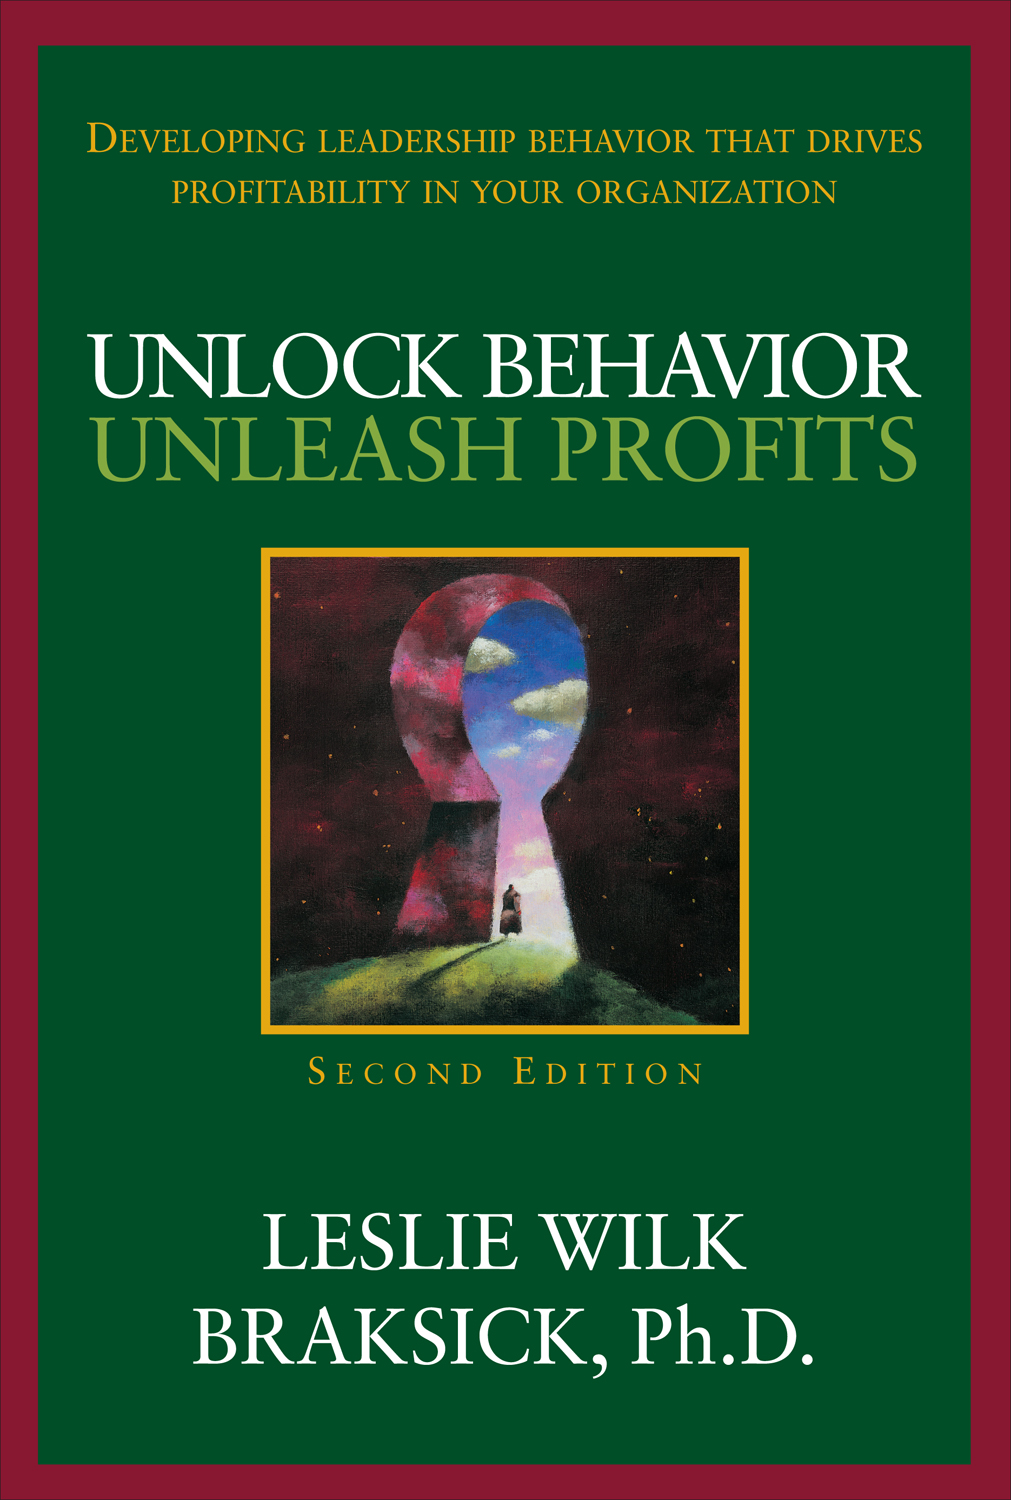 Unlock Behavior, Unleash Profits: Developing Leadership Behavior That Drives Profitability in Your Organization By: Leslie Wilk Braksick